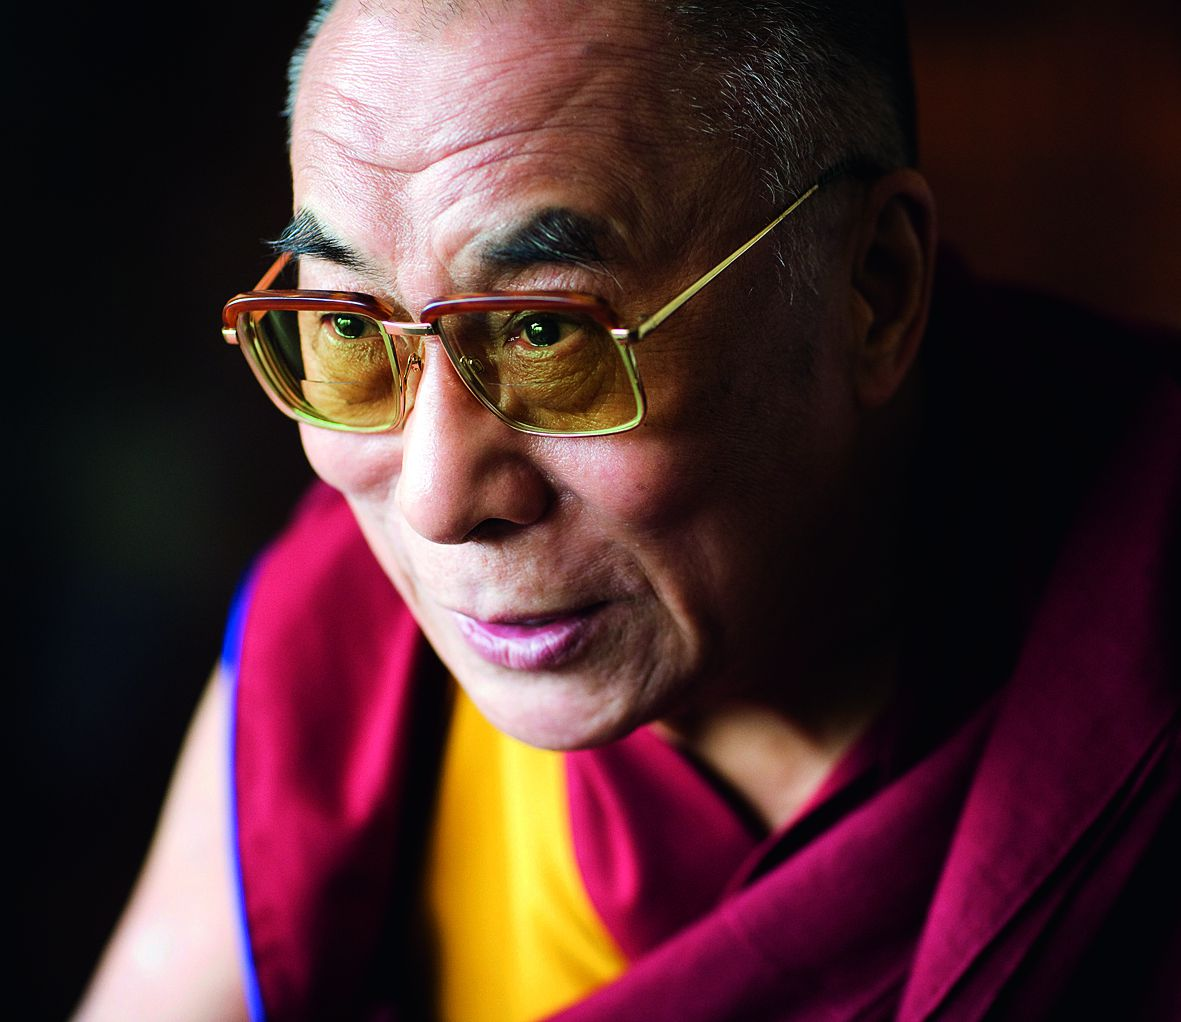 The Dalai Lama, revered spiritual leader, head of the Tibetan Government in Exile. © David Levene / eyevine Contact eyevine for more information about using this image: T: +44 (0) 20 8709 8709 E: info@eyevine.com http:///www.eyevine.com